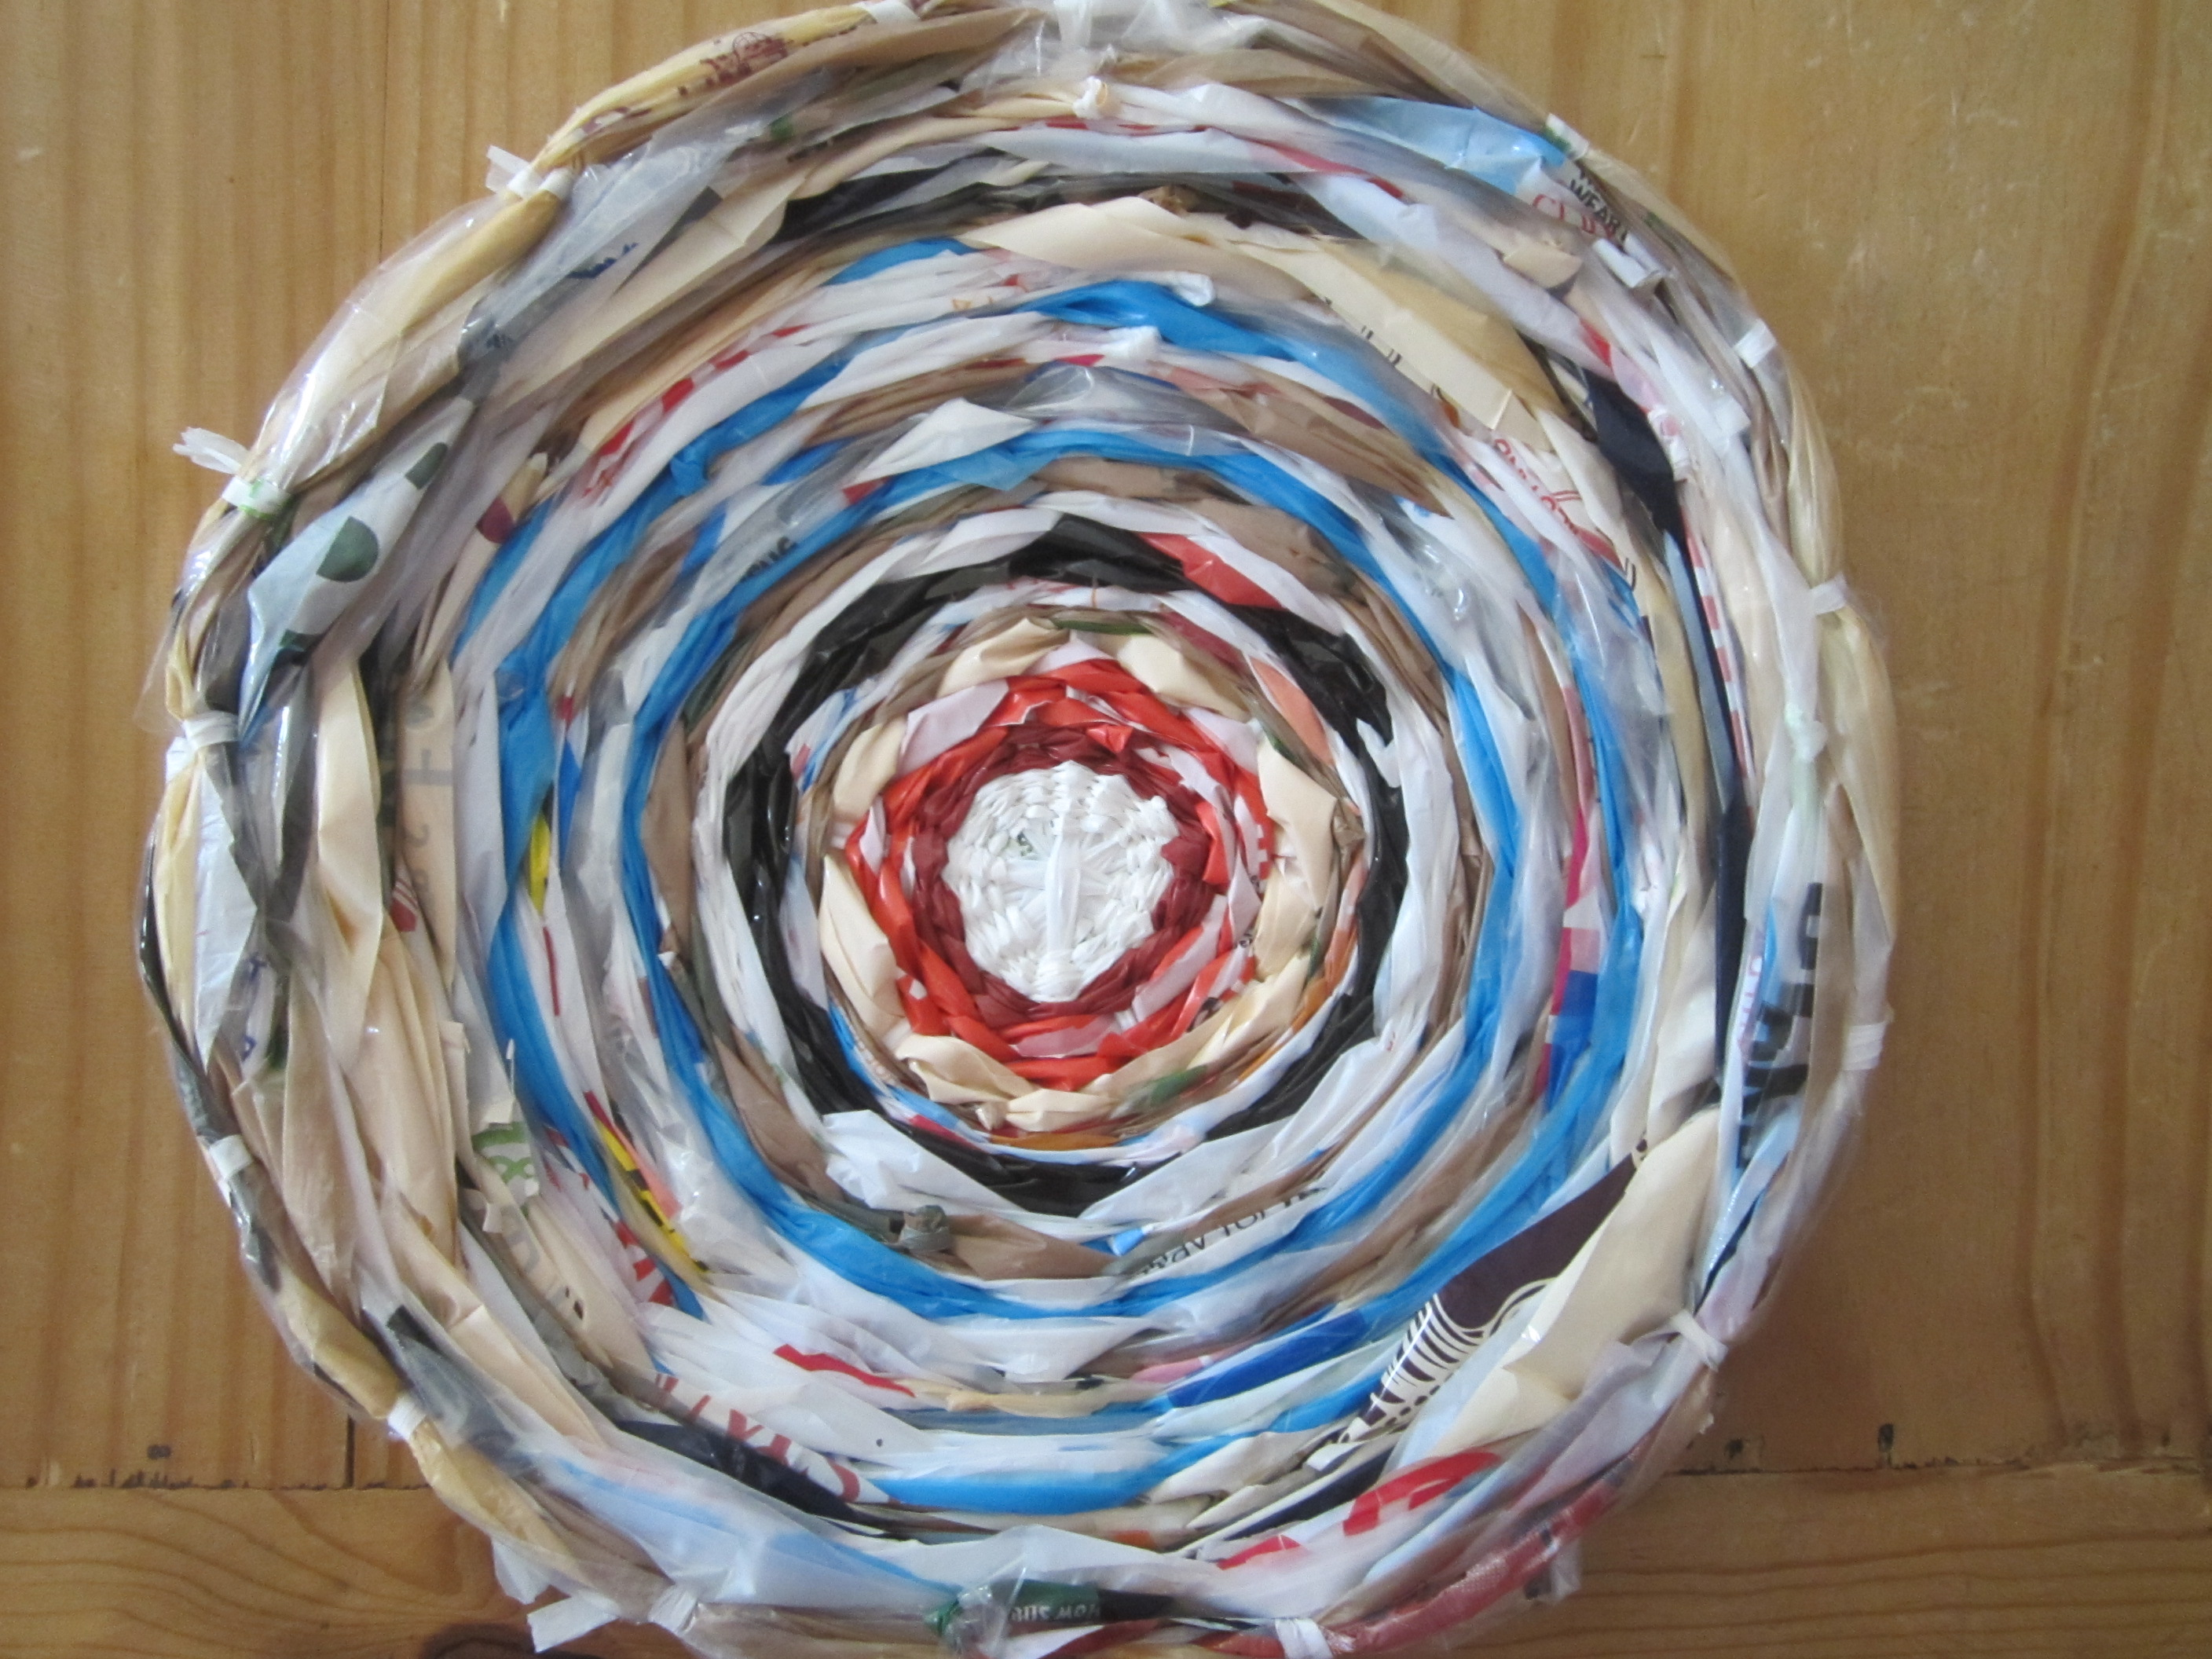 Finished woven circle from plastic bags